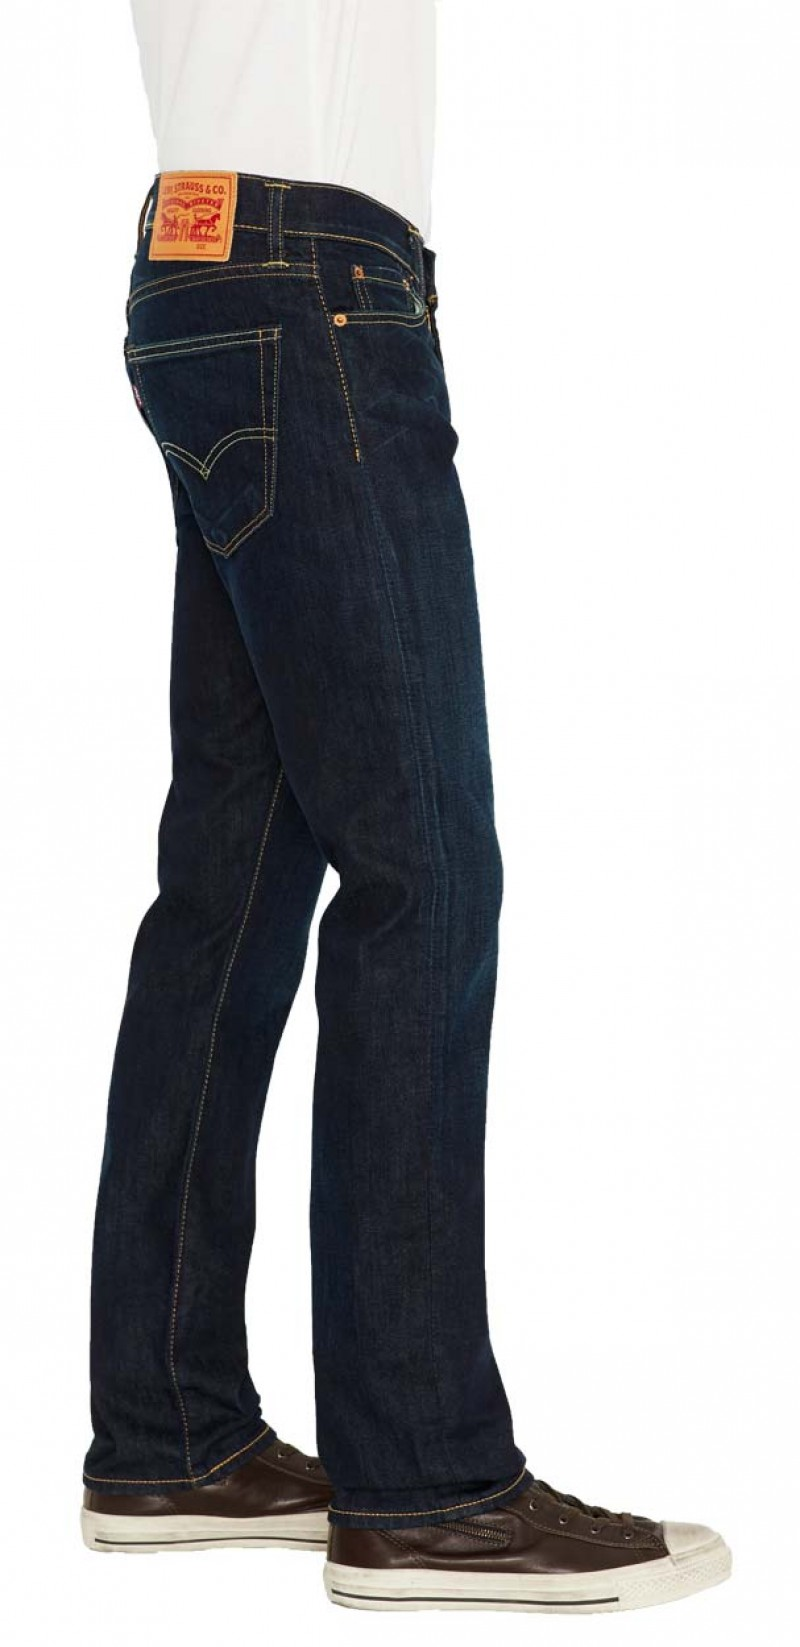 Levis 513 Jeans - Slim Straight - Biology